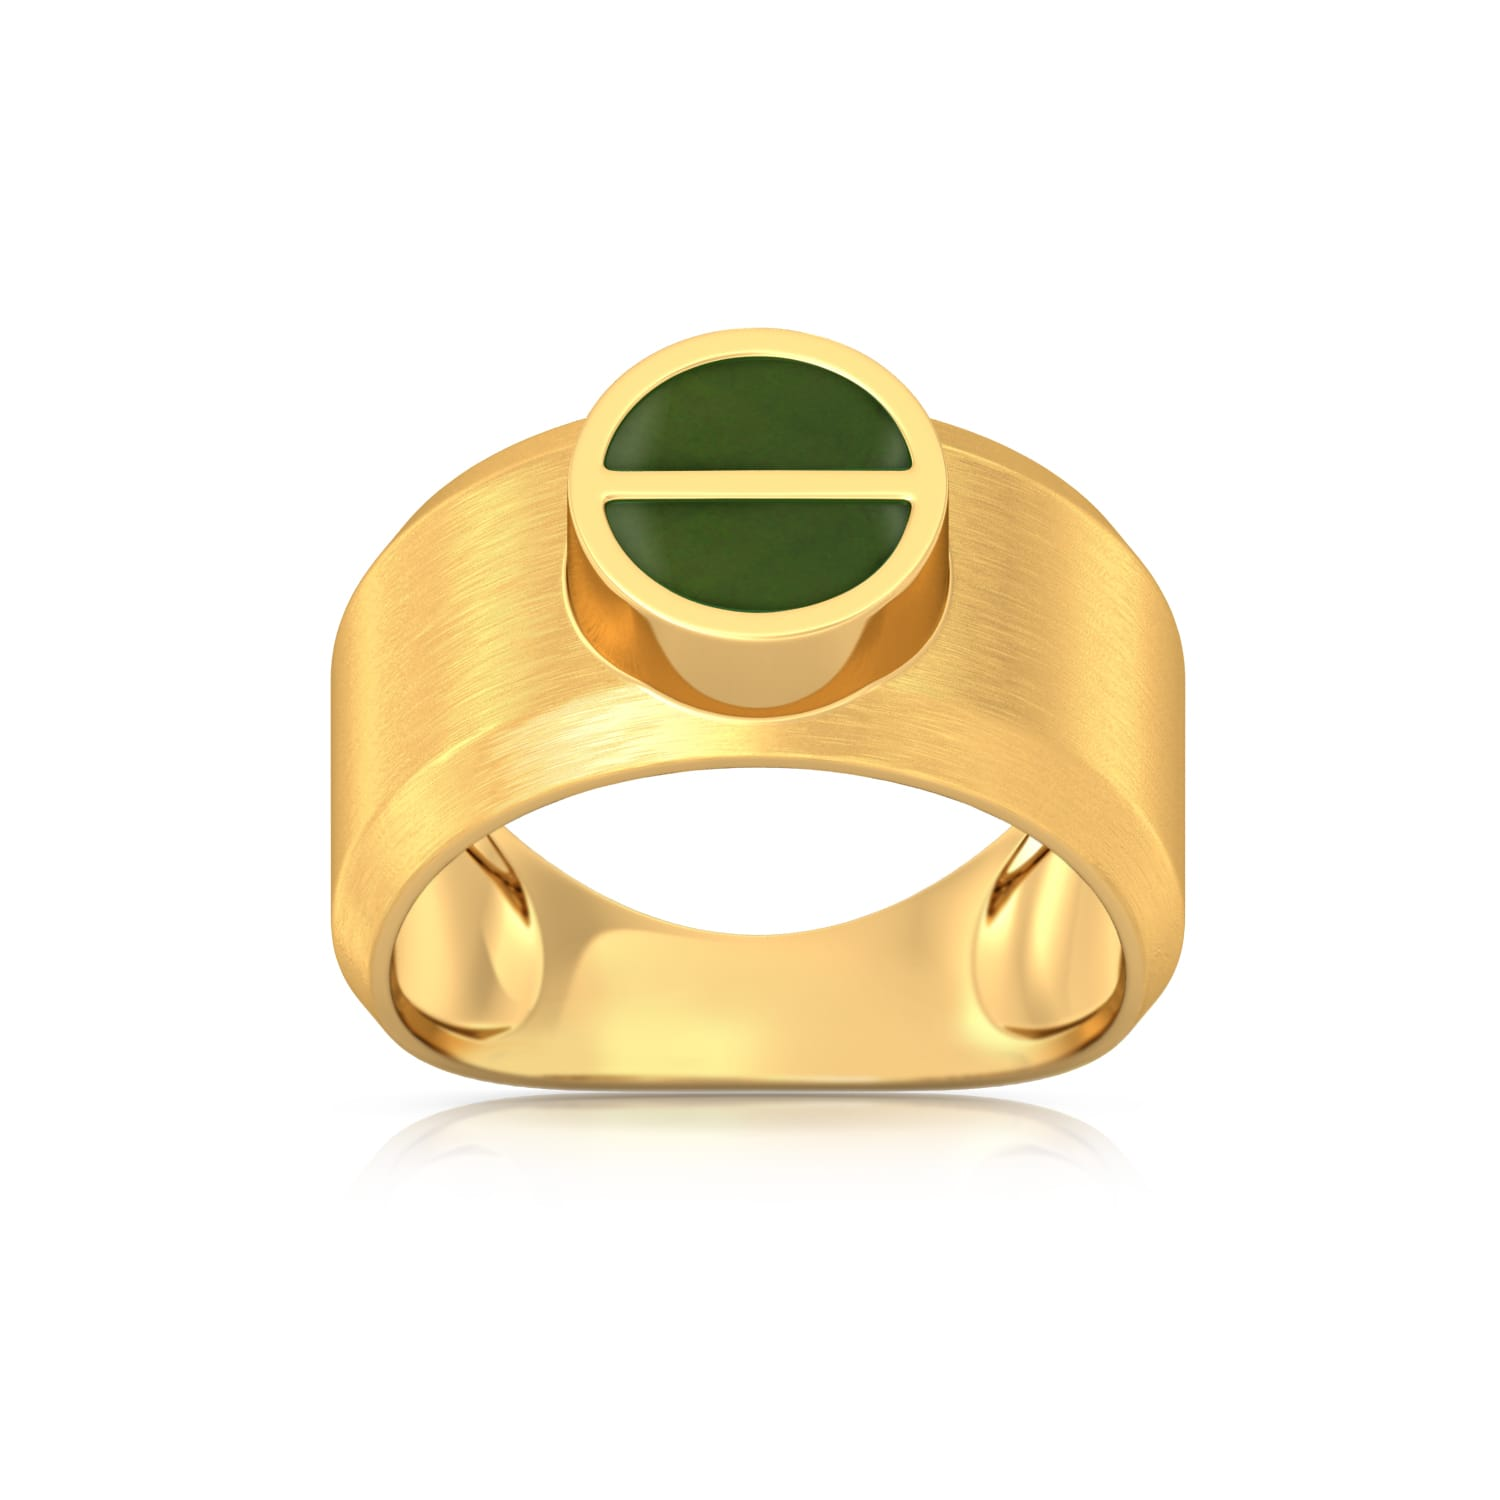 Green Bolts Gold Rings